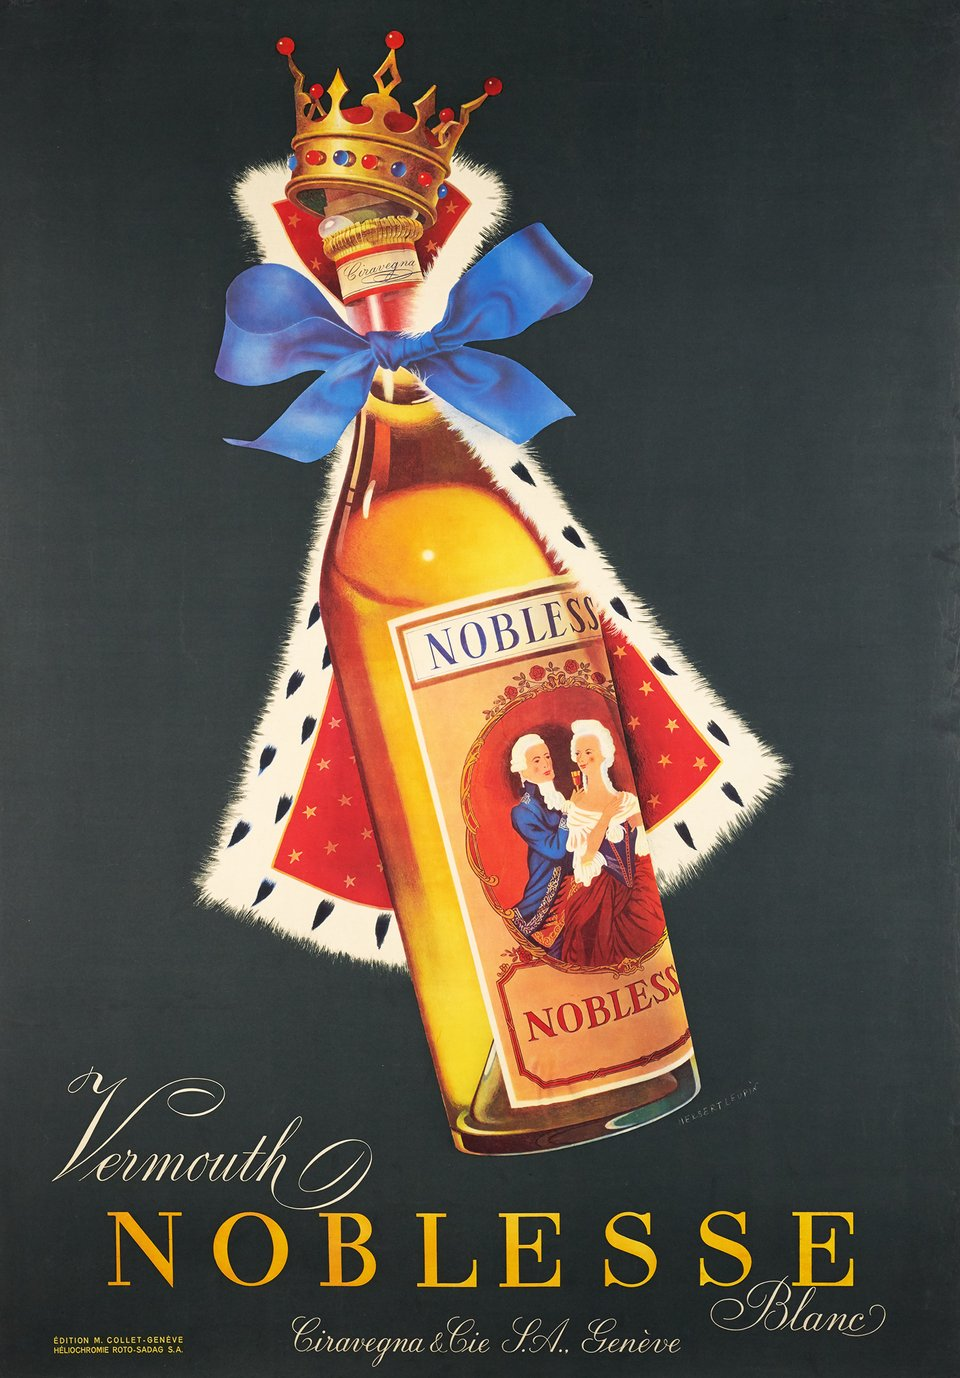 Vermouth Noblesse – Vintage poster – Herbert LEUPIN – 1952